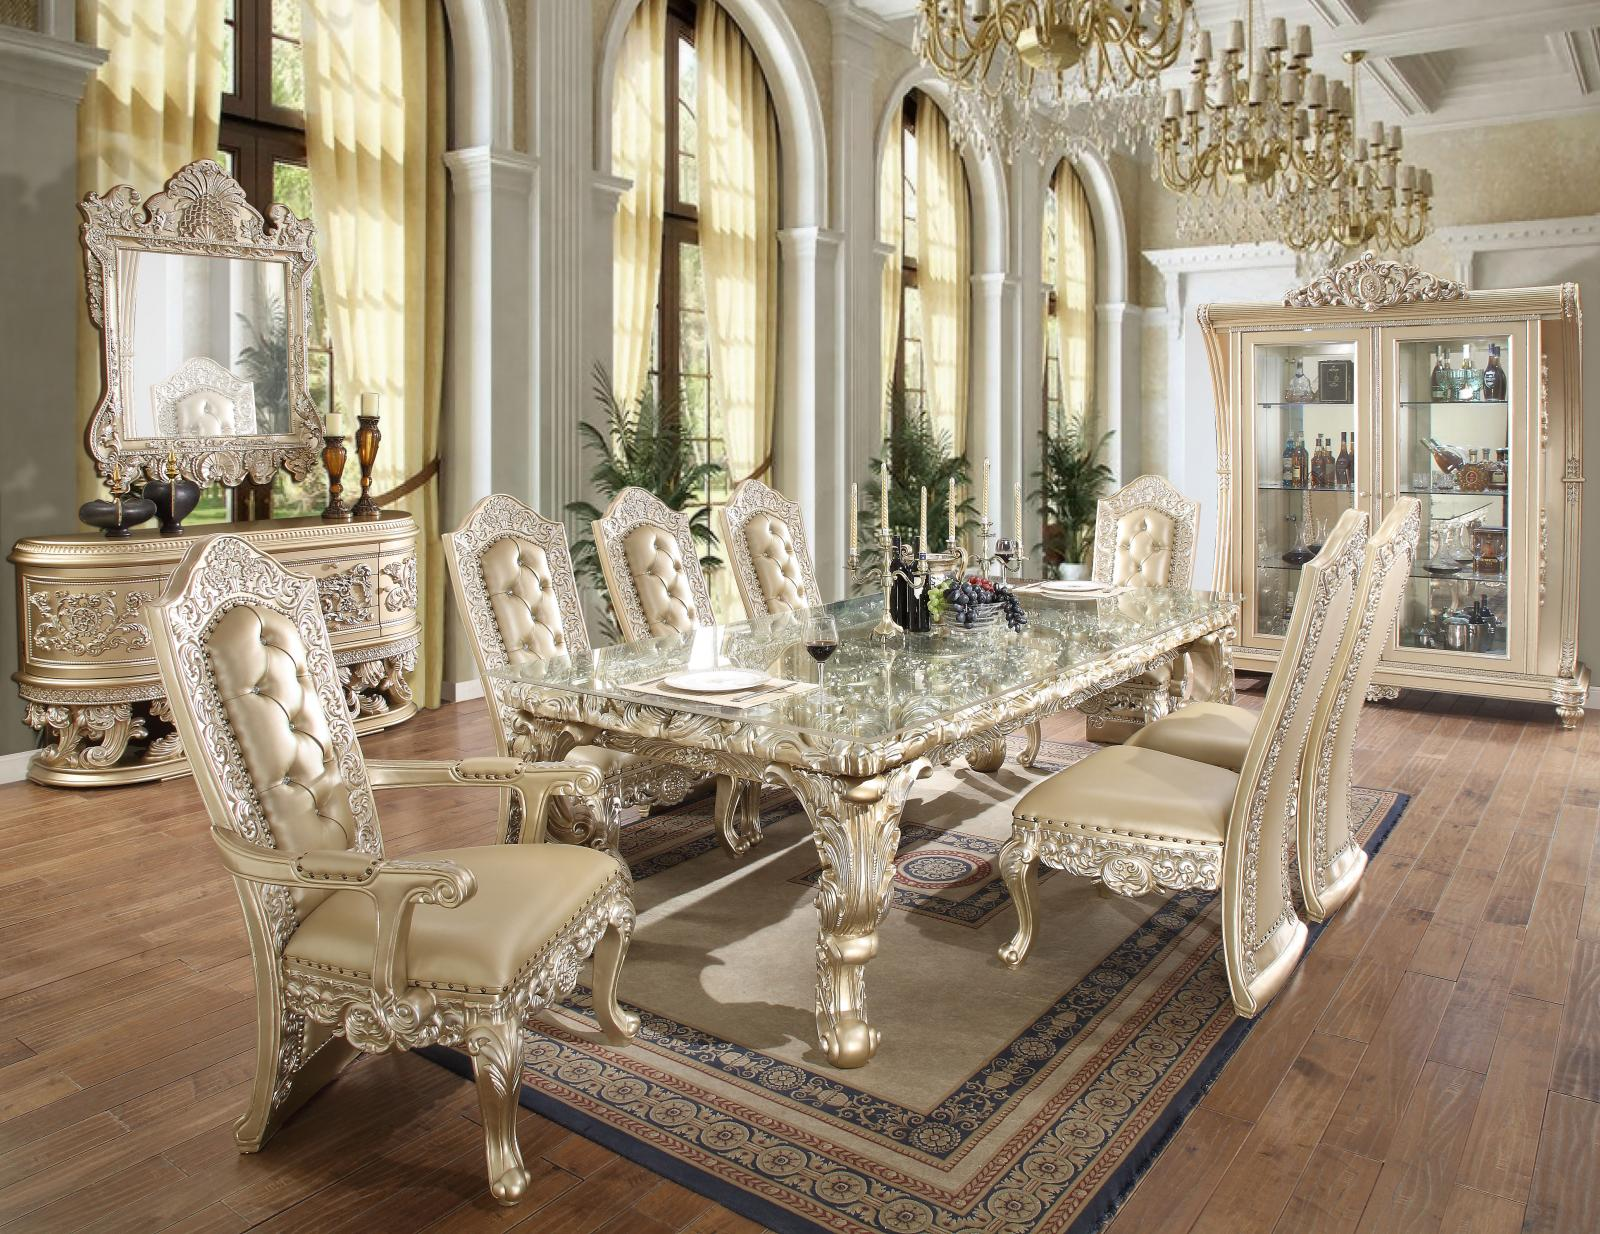 Luxury Belle Silver Dining Room Set 10P w/ China HD-8022 Homey Design Classic